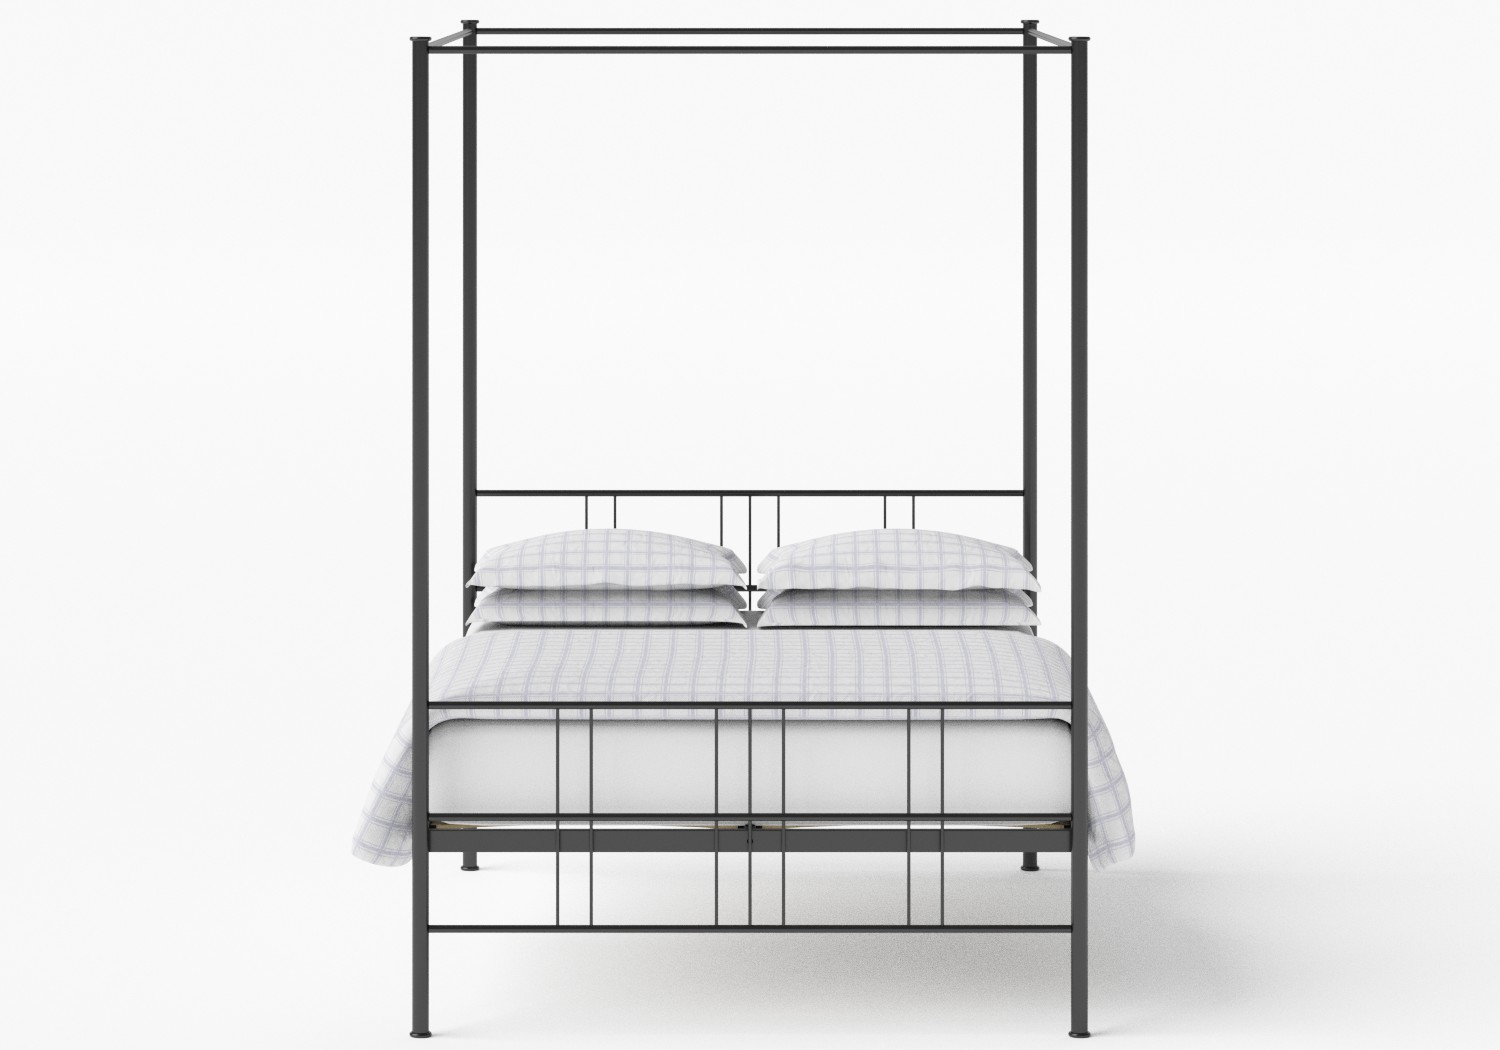 Toulon iron bed in Black